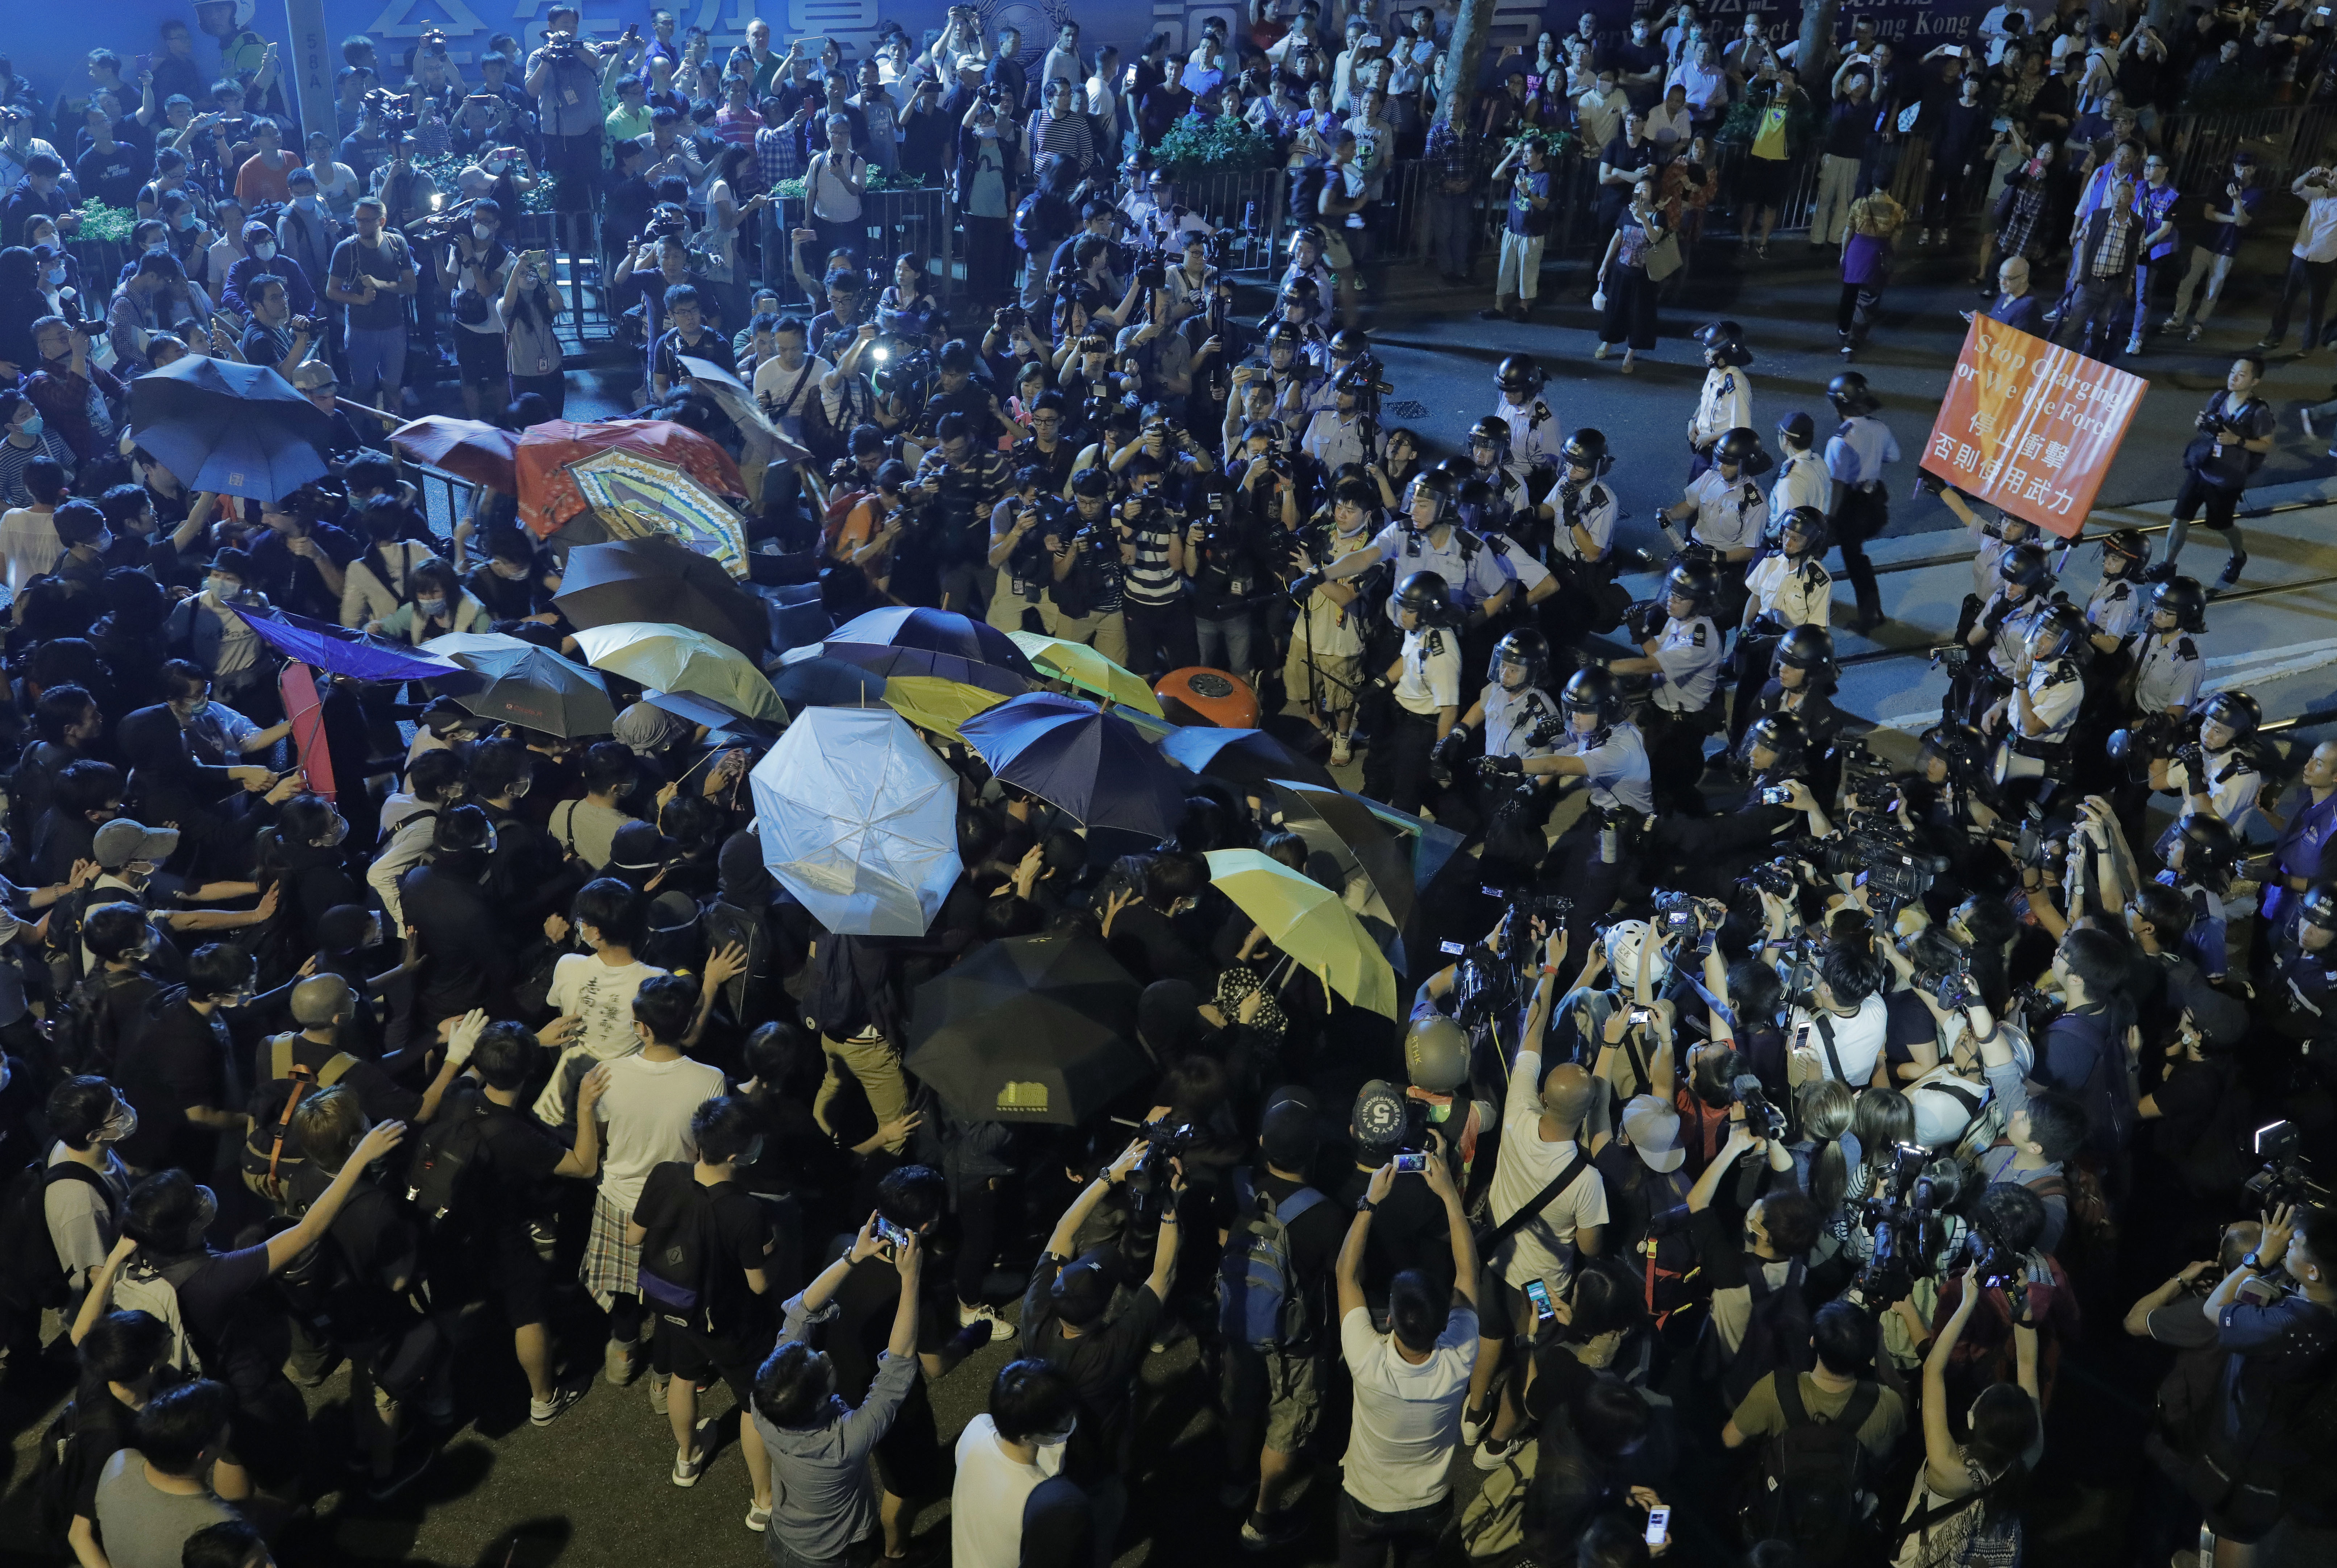 Protesters use umbrellas to block the pepper spray from office officers outside the Chinese central government's liaison office in Hong Kong, Sunday, Nov. 6, 2016. Thousands of protesters marched in Hong Kong on Sunday, demanding that China's central government stay out of a political dispute in the southern Chinese city after Beijing indicated that it would intervene to deter pro-independence advocates. (AP Photo/Vincent Yu)